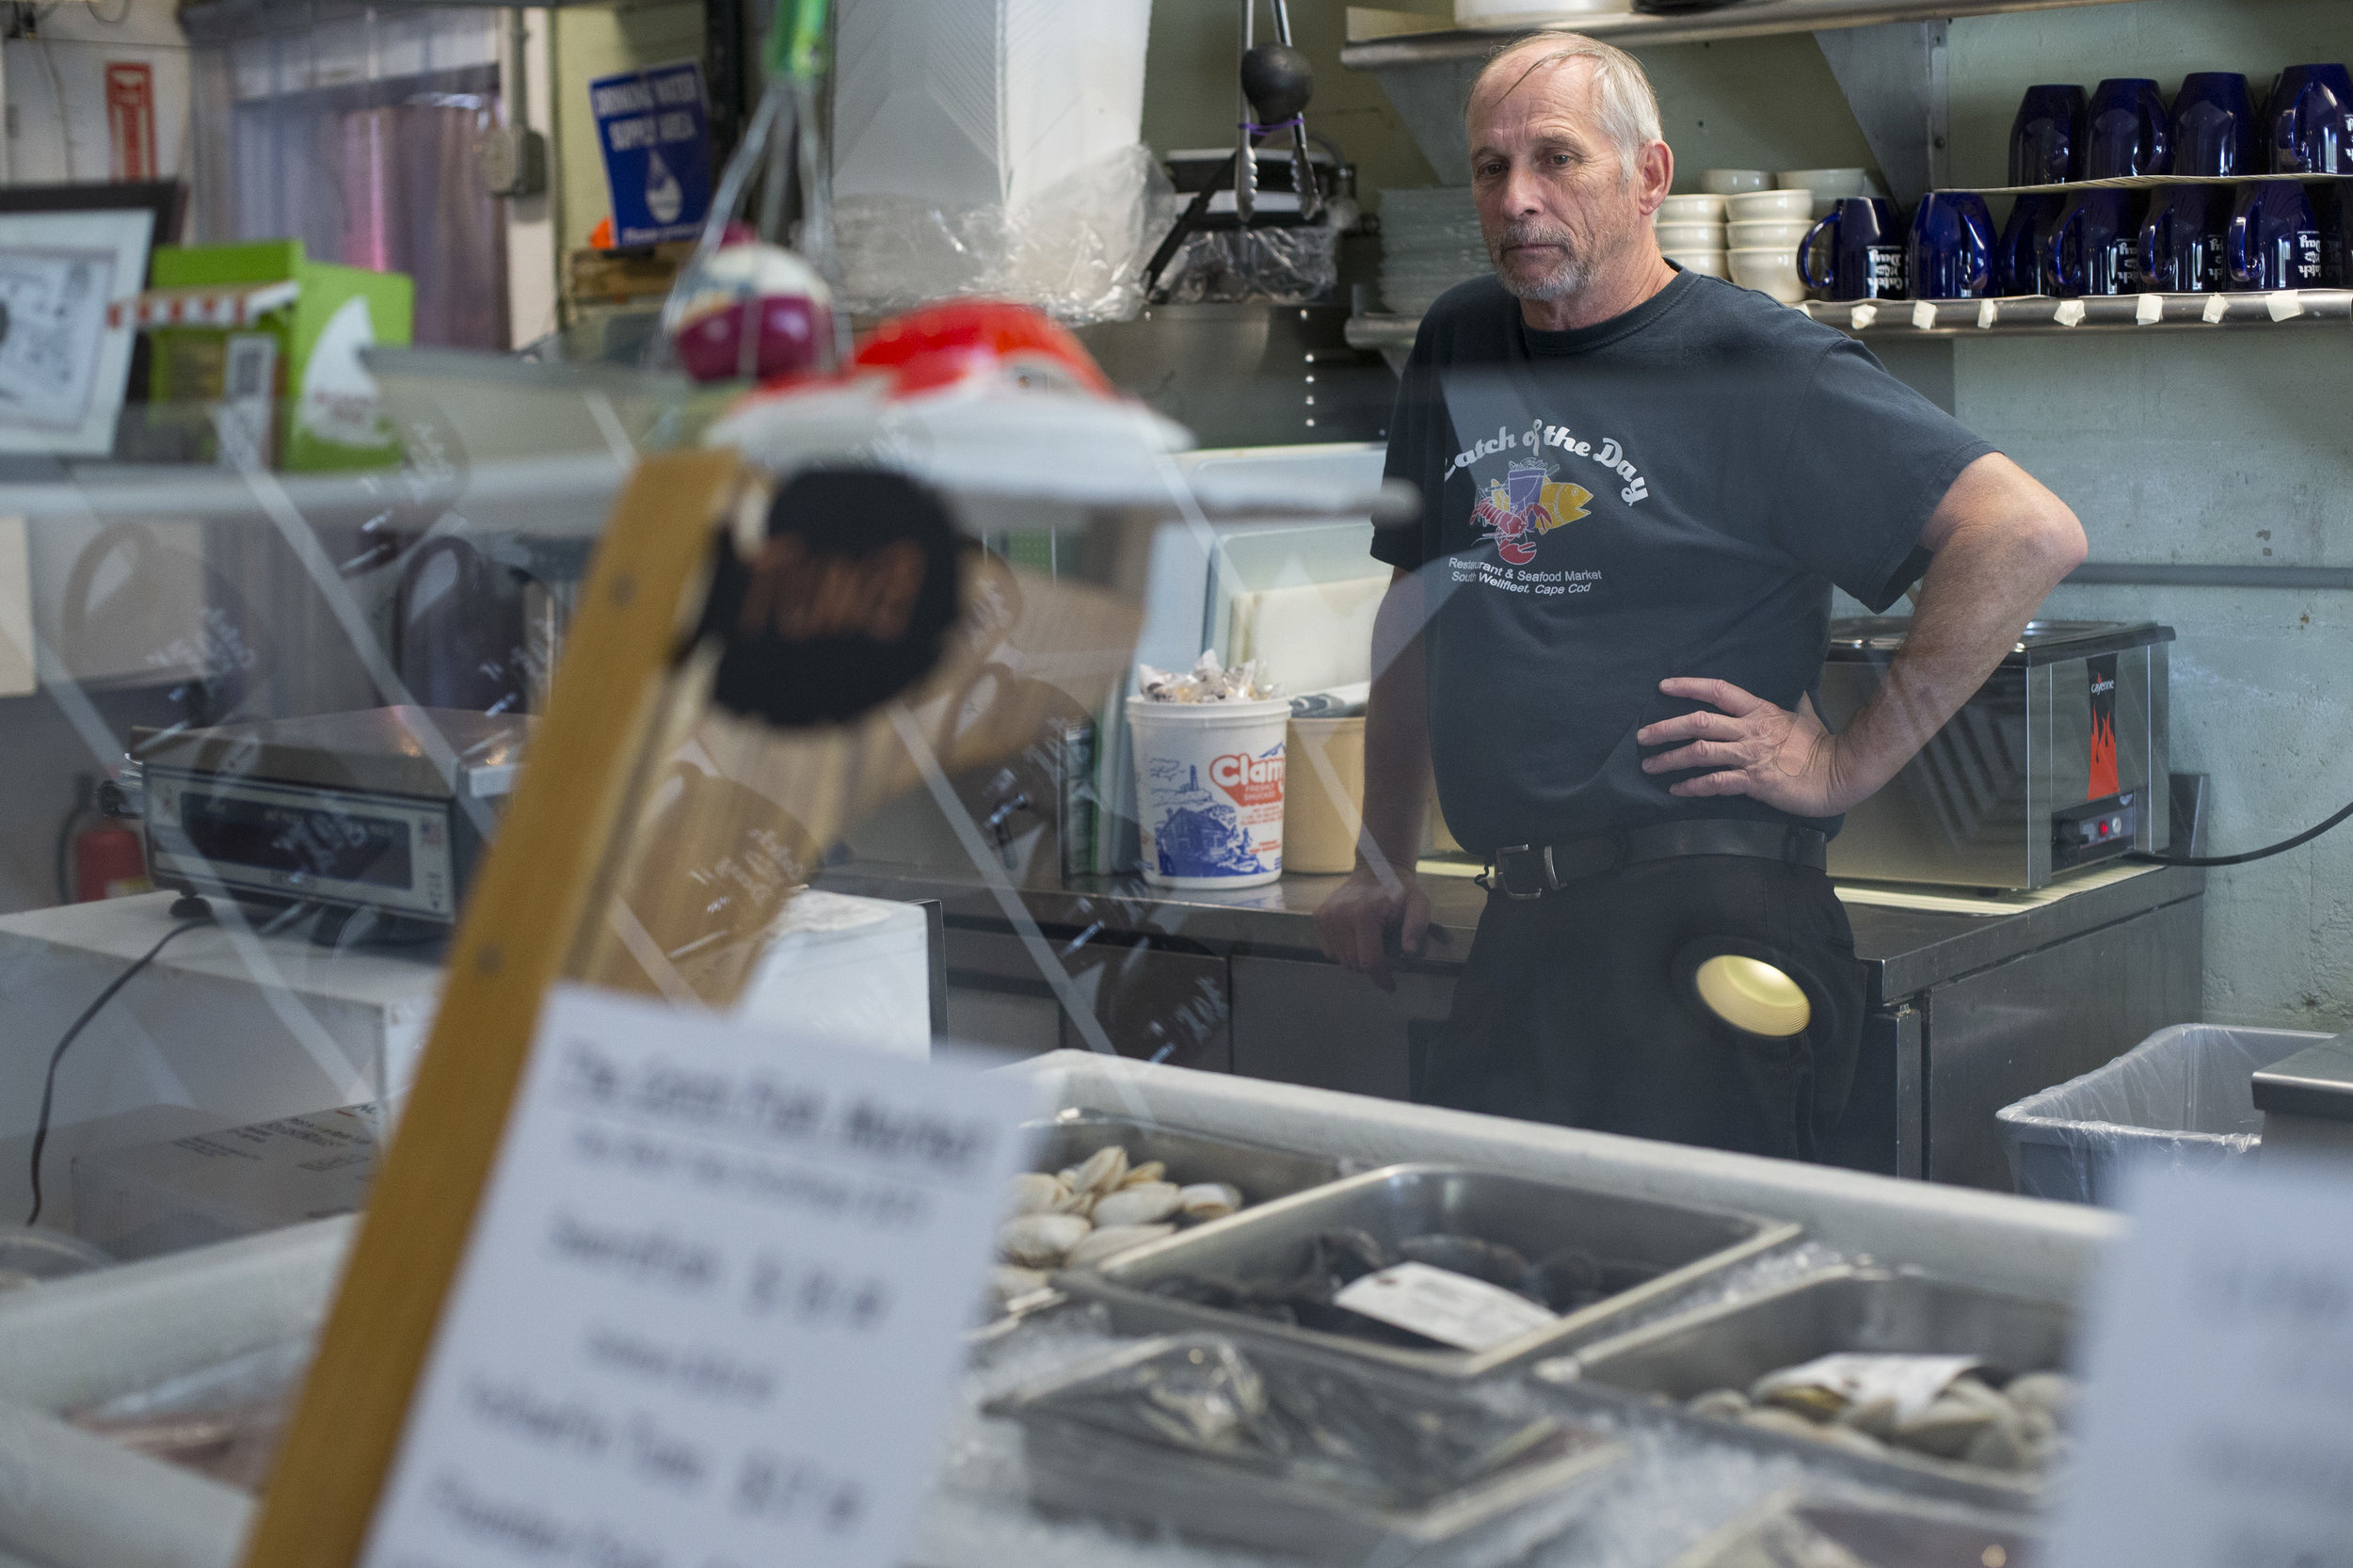 Chuck Fletcher, manager of Catch of the Day restaurant and seafood market, takes a quick break behind the counter of the seafood market in Wellfleet, Massachusetts on May 21, 2018. The business is one of many that are having difficulty finding seasonal workers to hire now that fewer visa's for foreign workers are being issued.